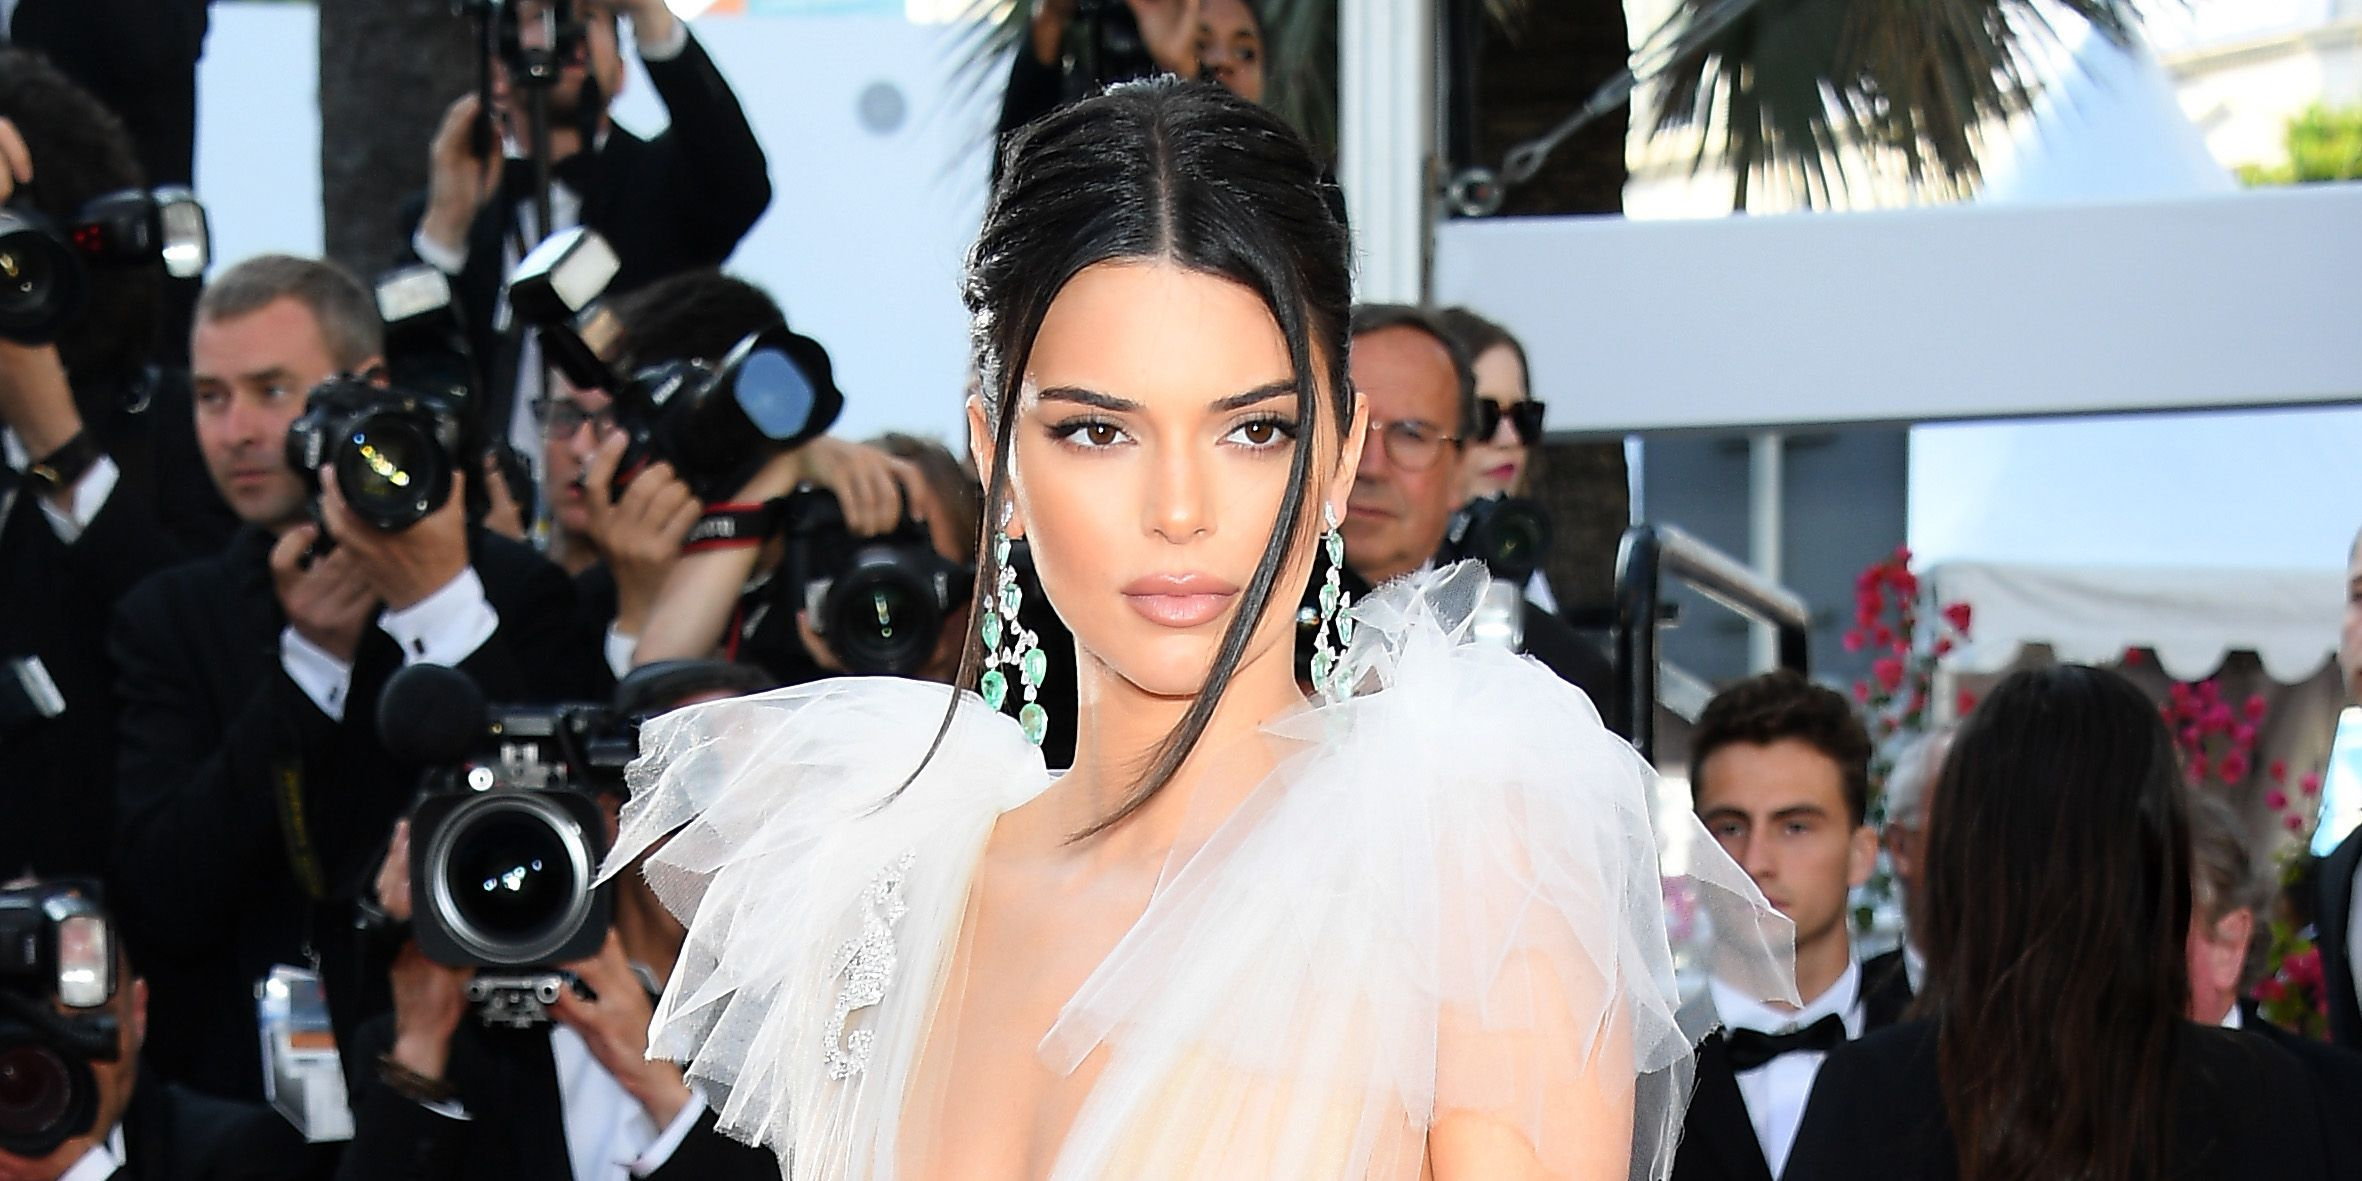 Cannes Film Festival: Kendall Jenner goes braless at